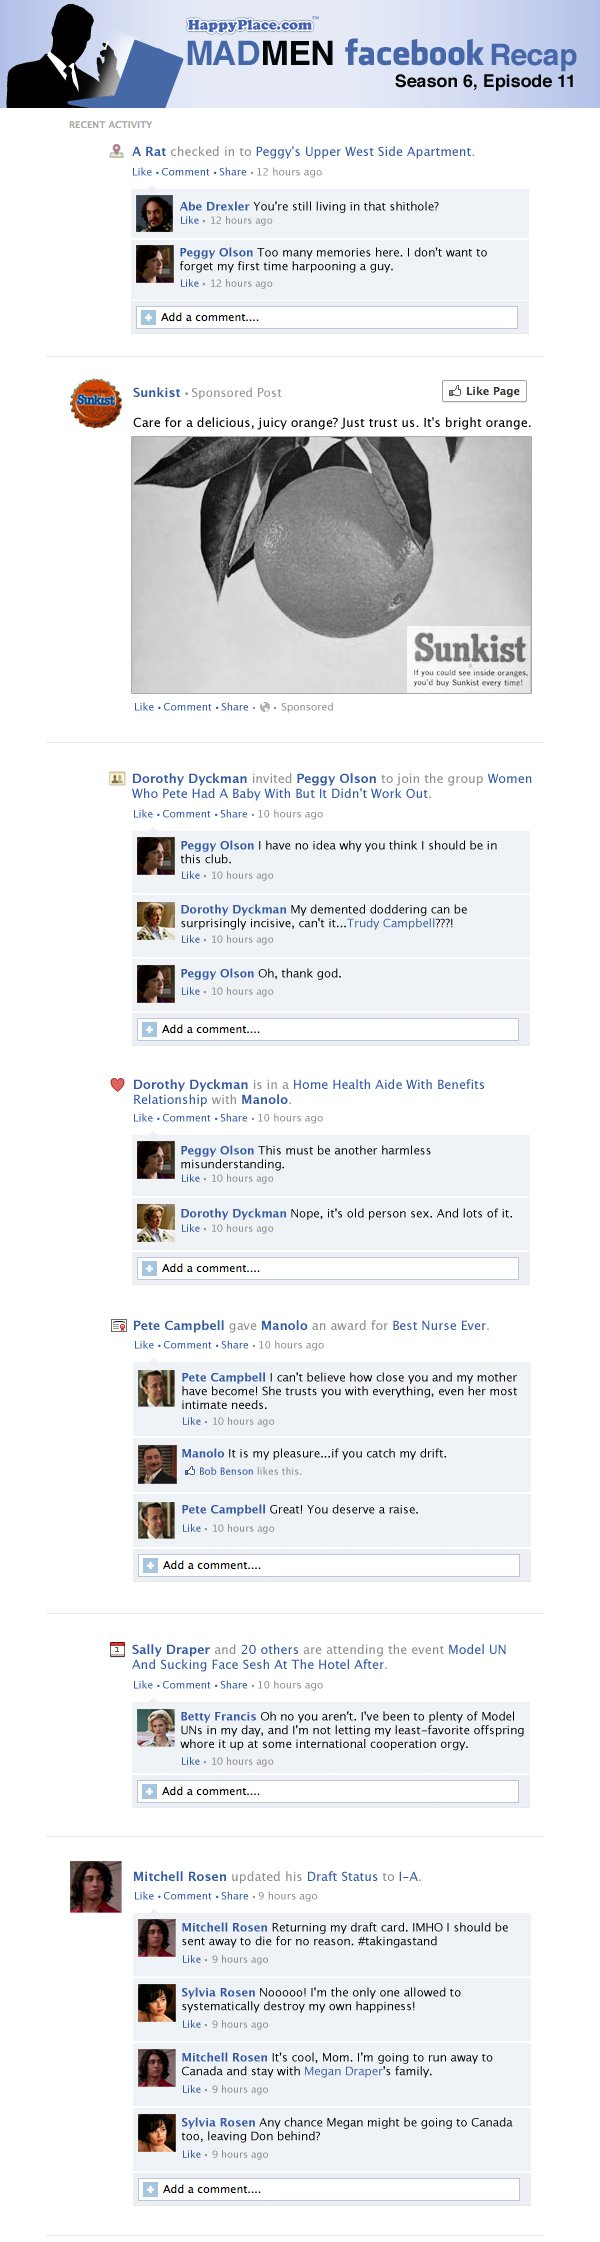 If Mad Men took place entirely on Facebook: Season 6, Episode 11.